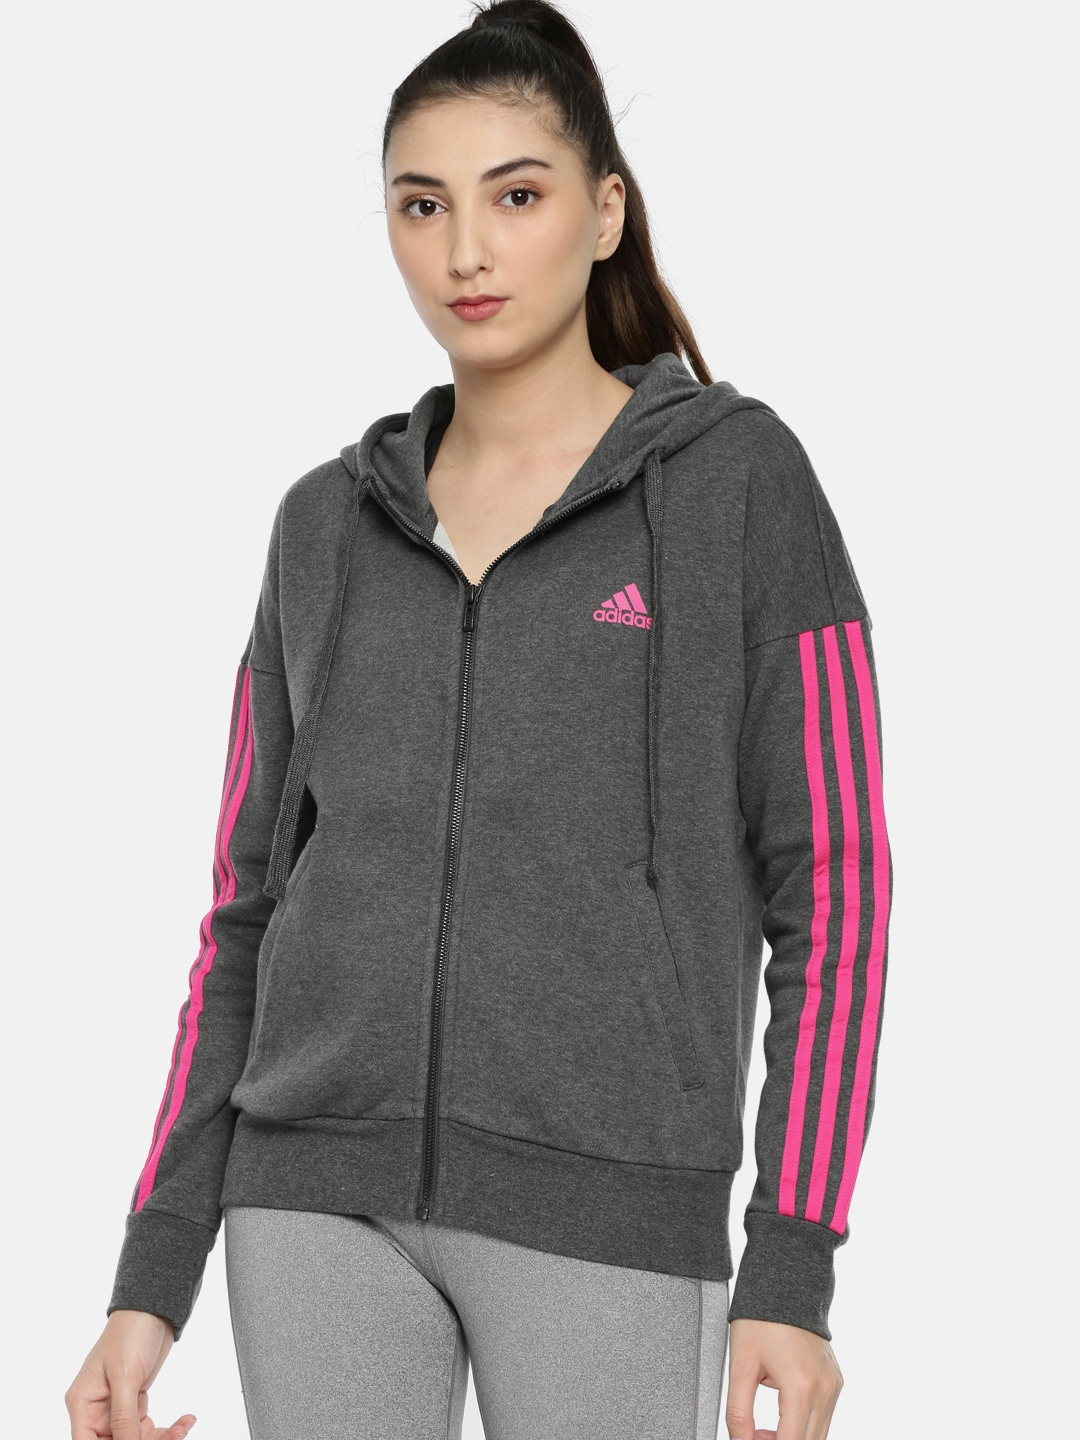 50% price cheap sale good out x ADIDAS Women Charcoal Grey ESS 3S FZ HD Solid Hooded Sweatshirt